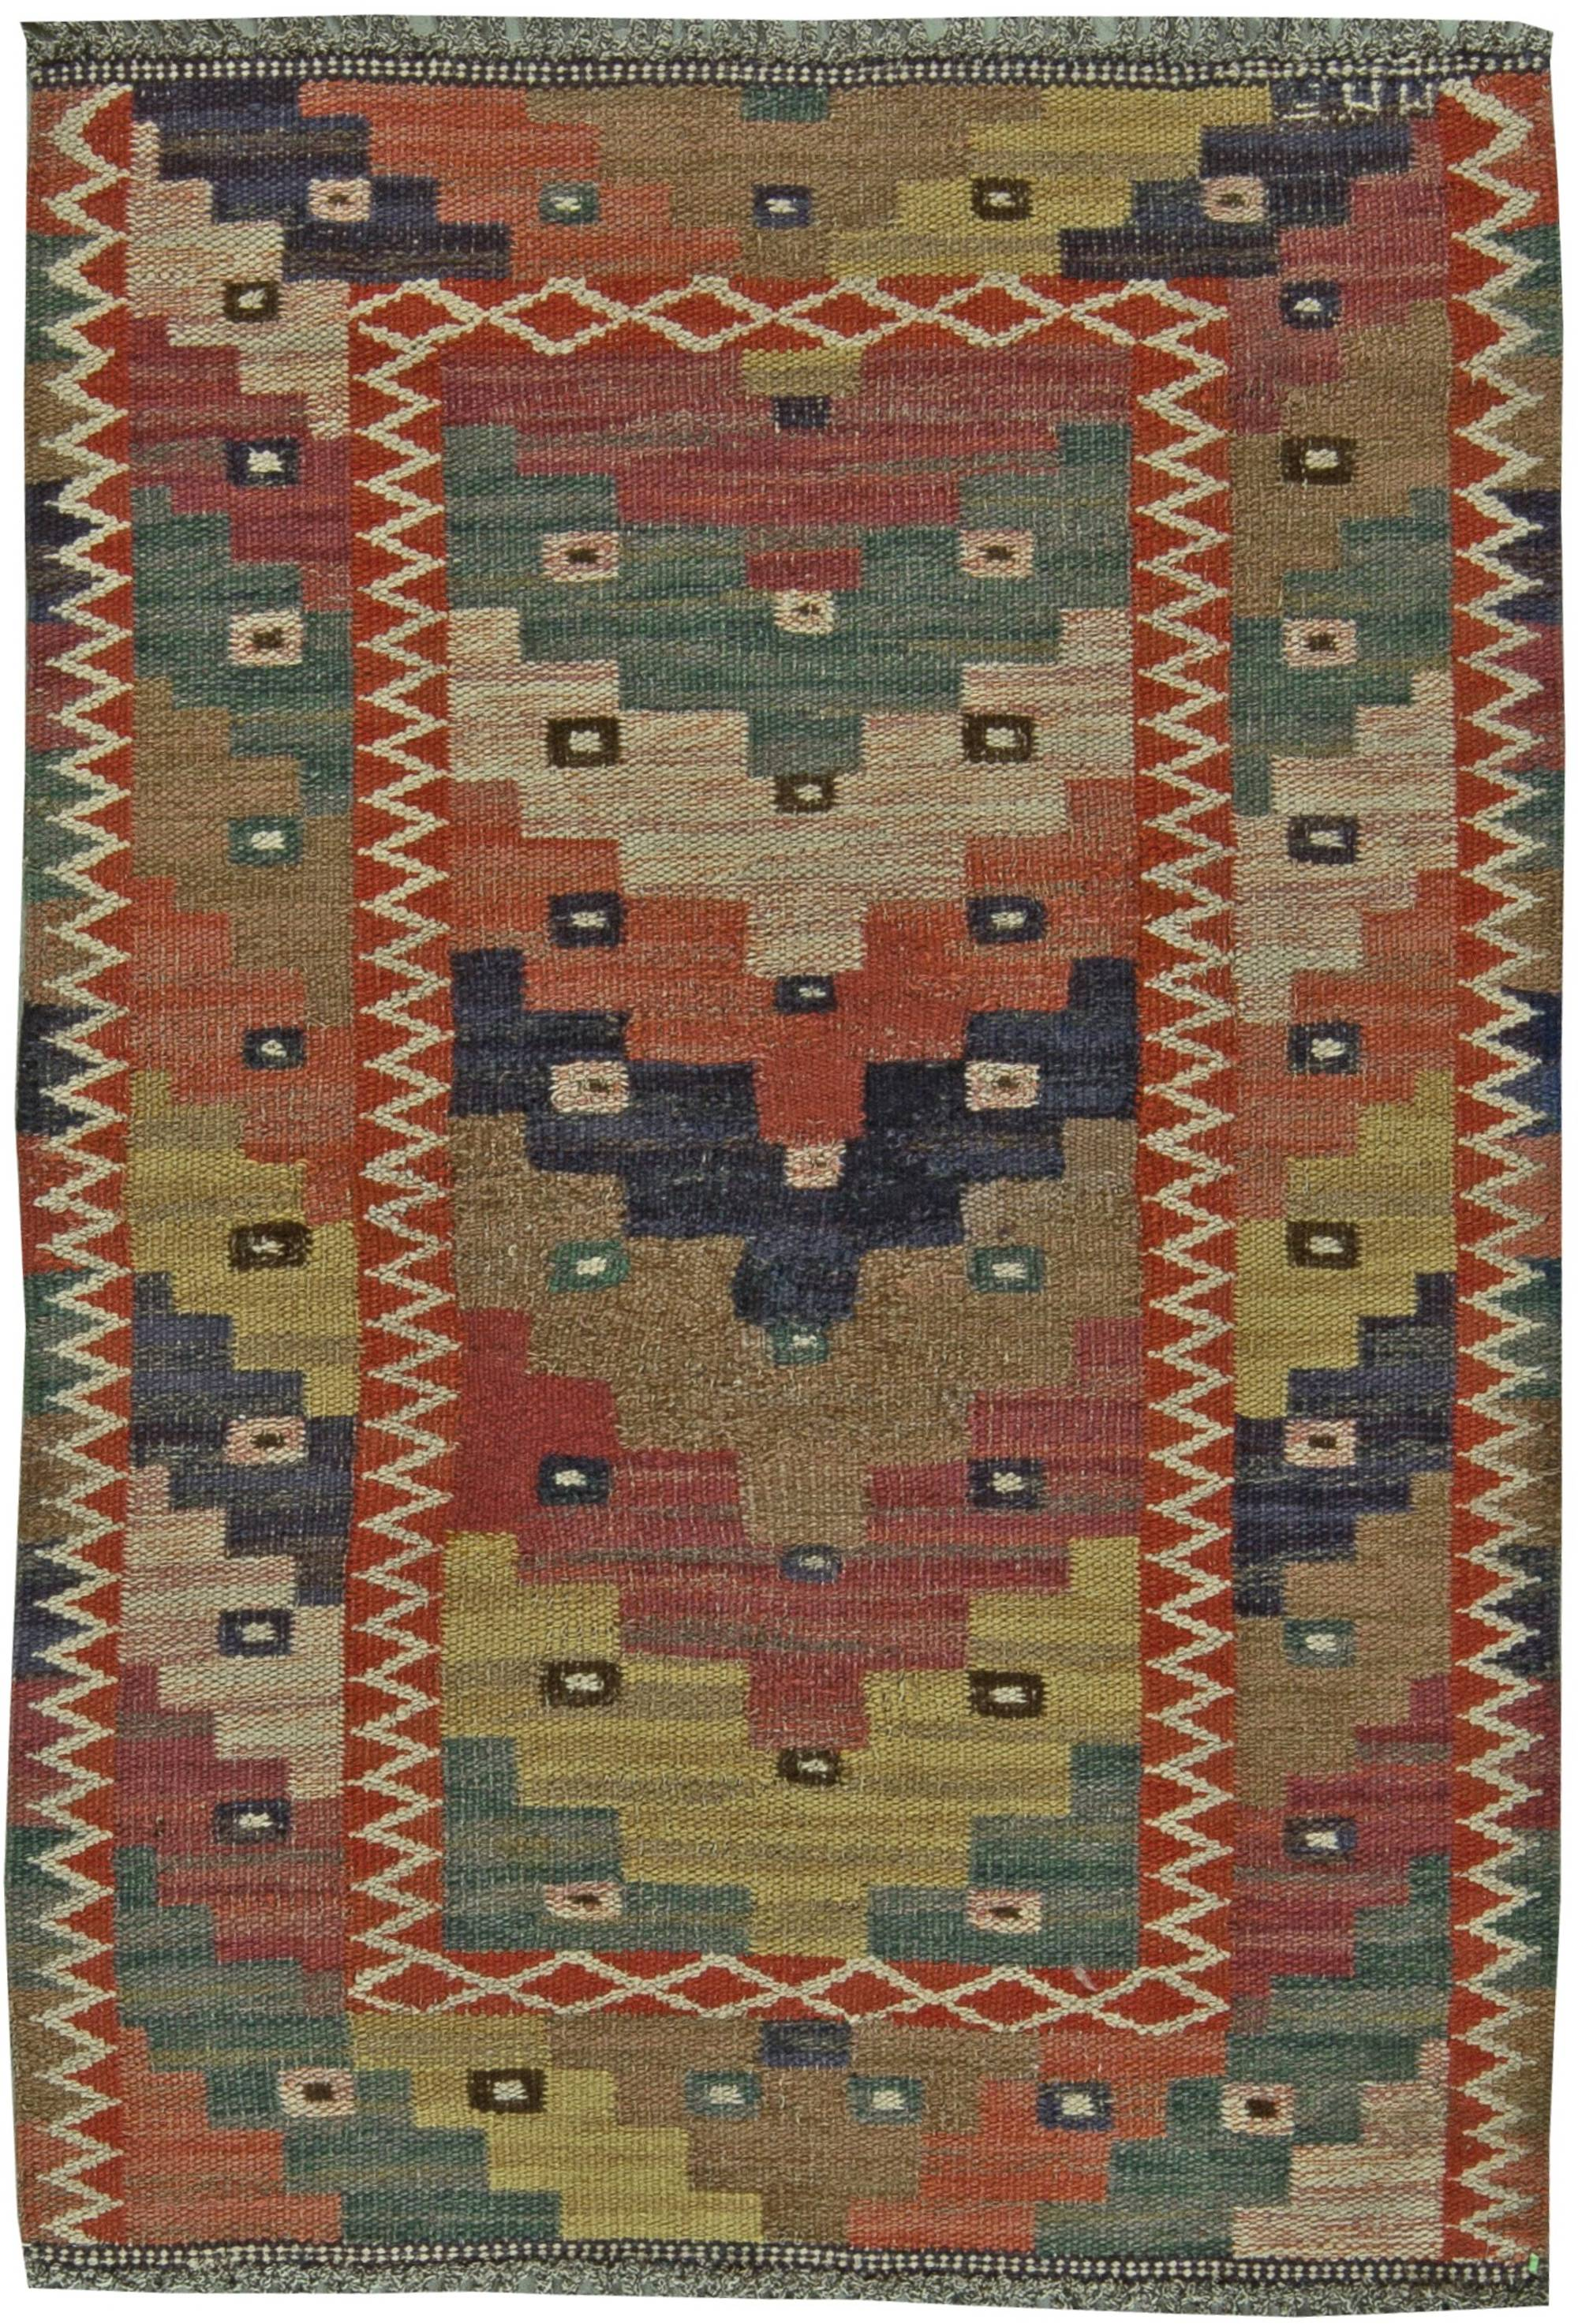 Perfect ... Vintage Swedish Rug By Marta Maas Fjetterstrom ...